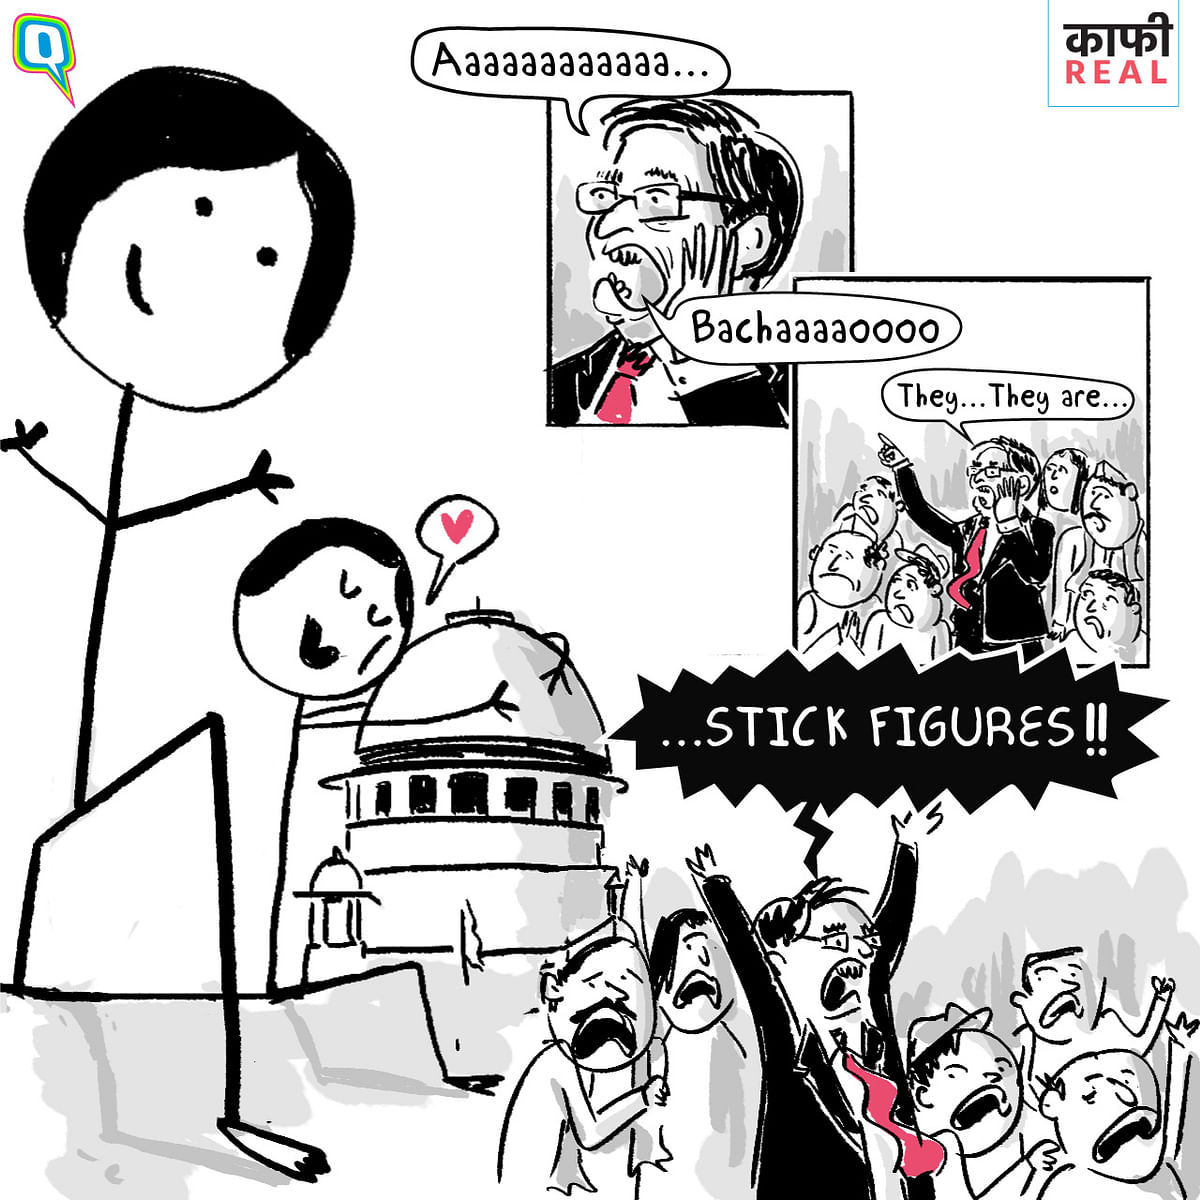 Those Scary Stick Figures! India's Fear of Cartoons is Kaafi Real